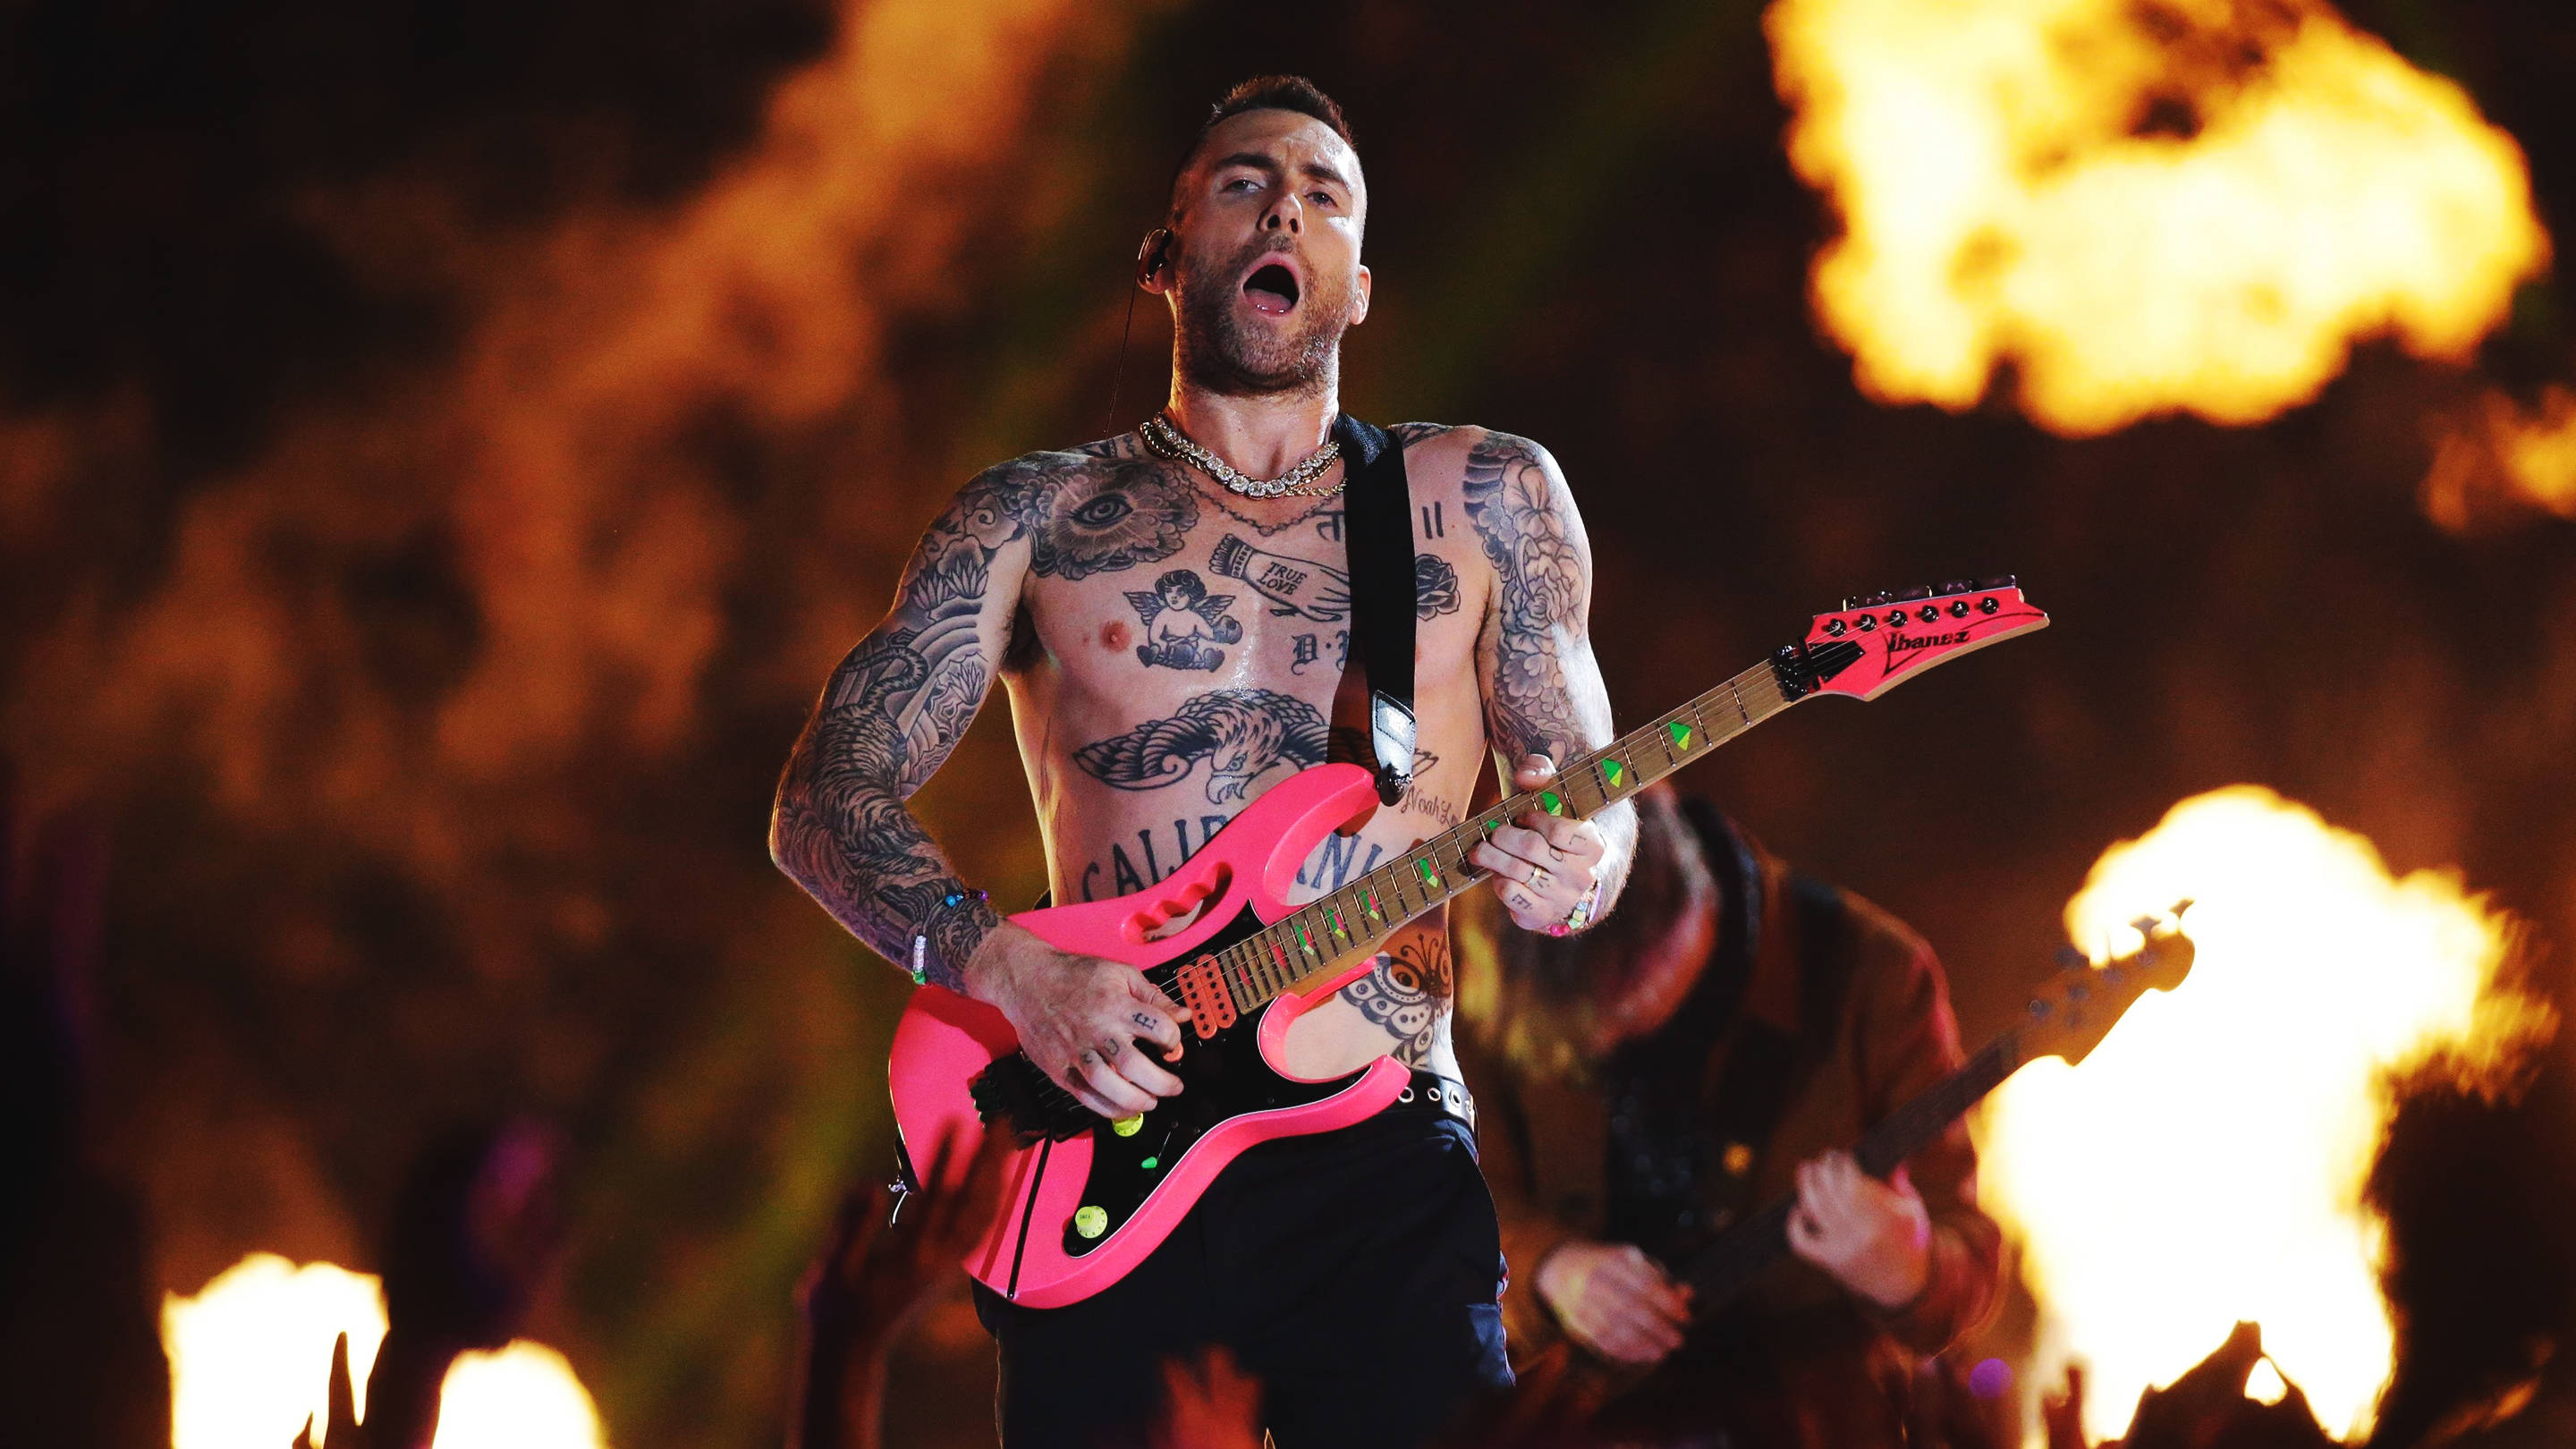 Maroon 5's Adam Levine at the Super Bowl halftime